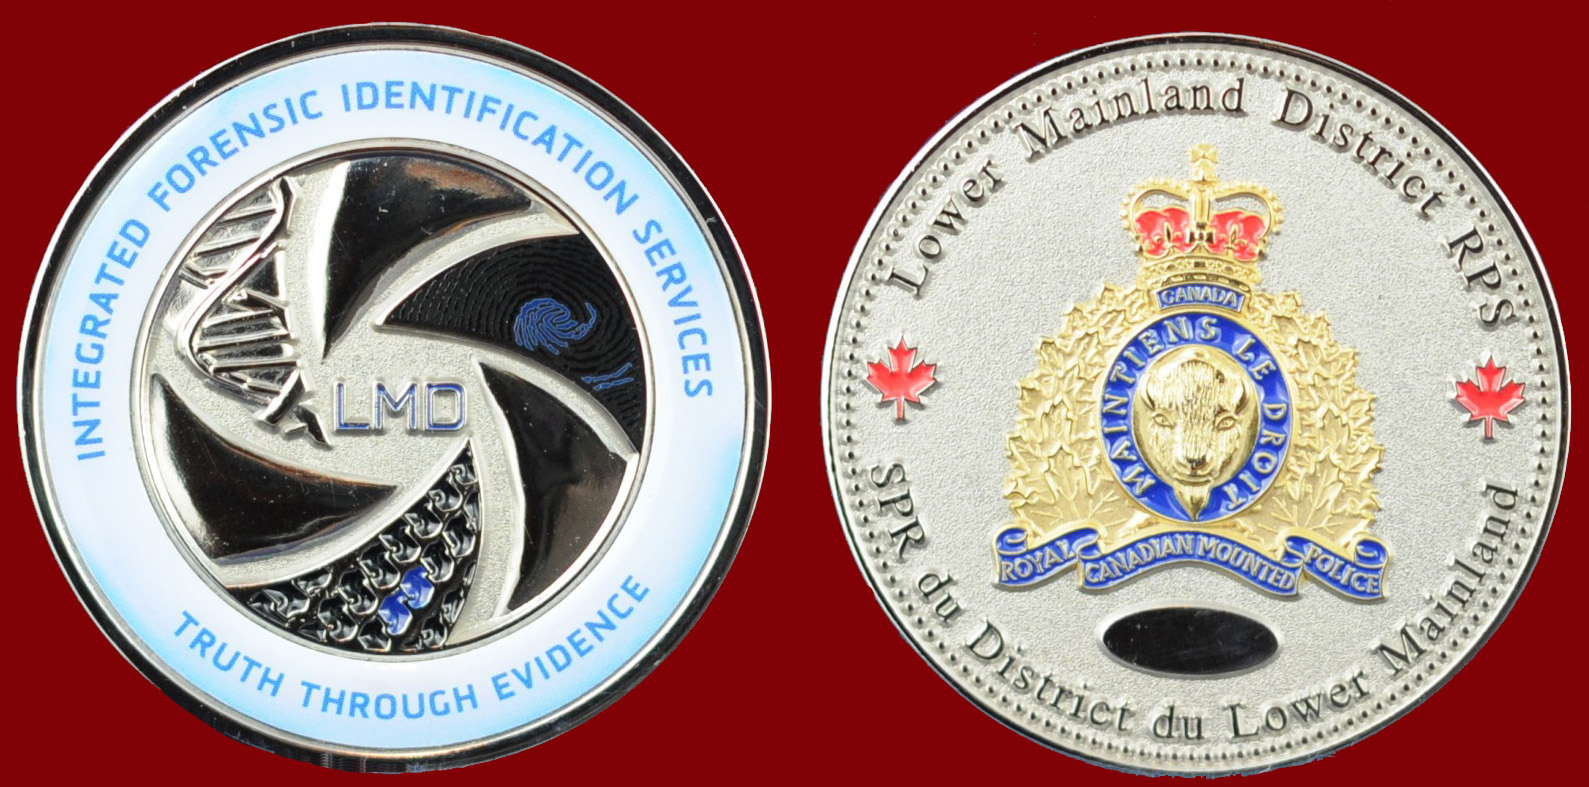 RCMP INTEGRATED FORENSIC IDENTIFICATION SERVICES